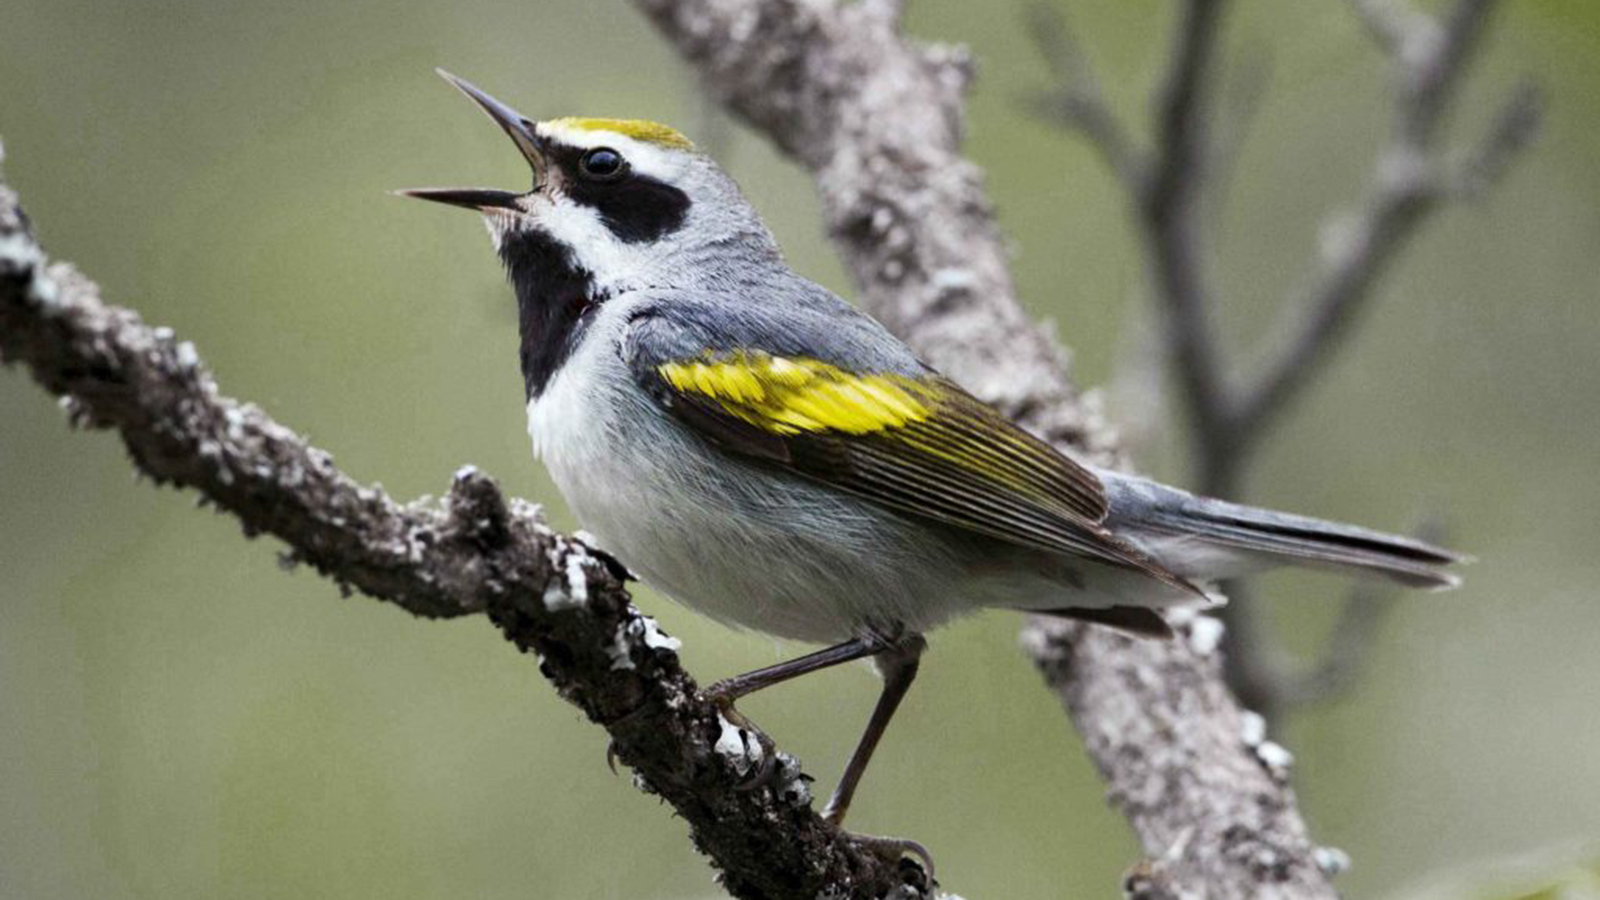 a white, black and yellow bird standing on a tree branch